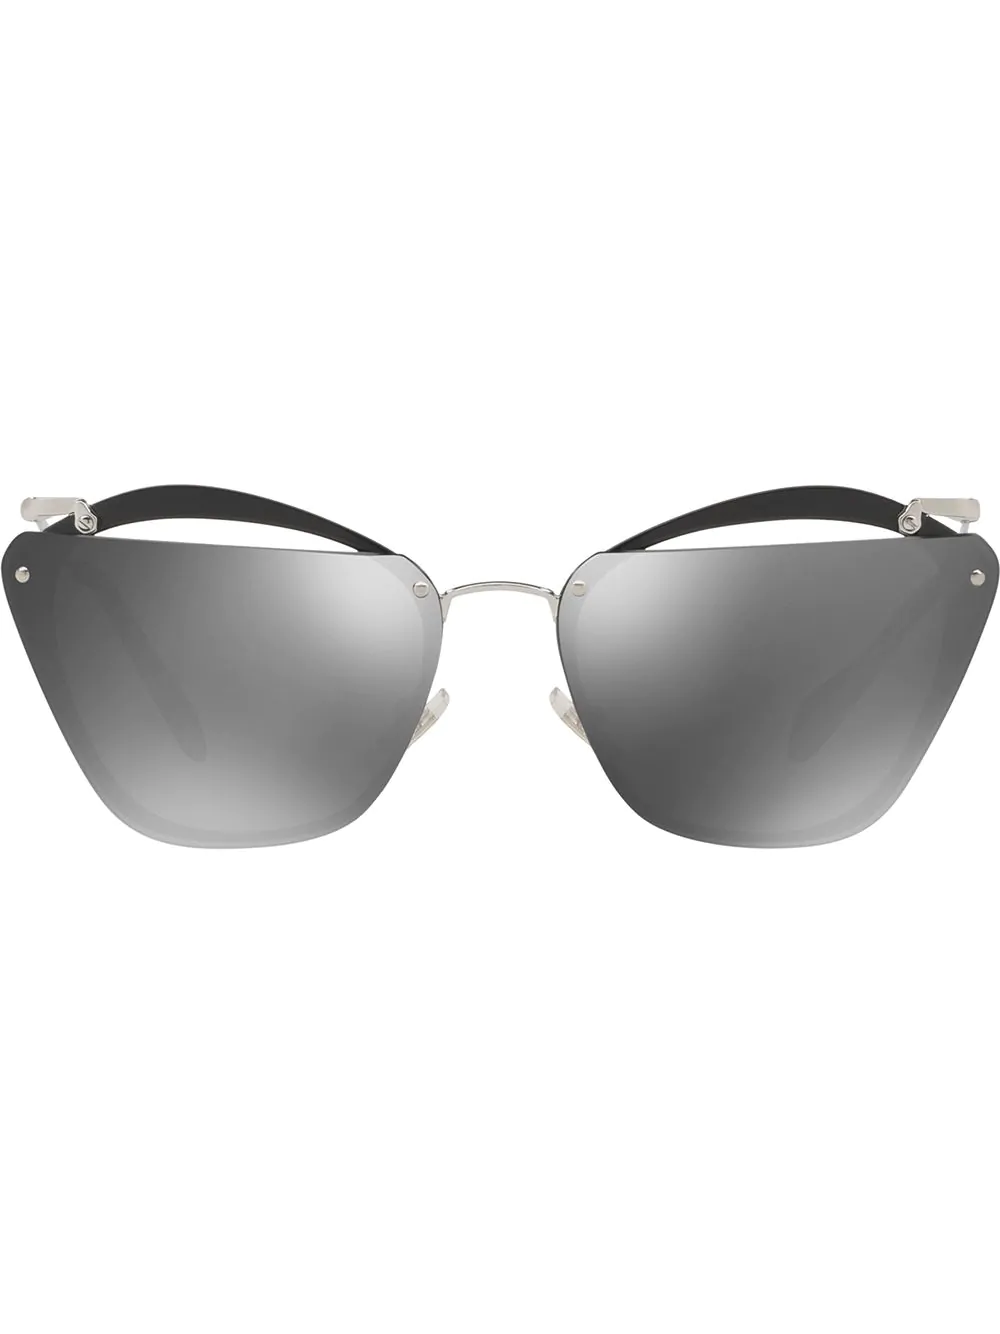 a08eaebf2bc7 Miu Miu Eyewear Cut-Out Mirrored Lenses - Black. Farfetch